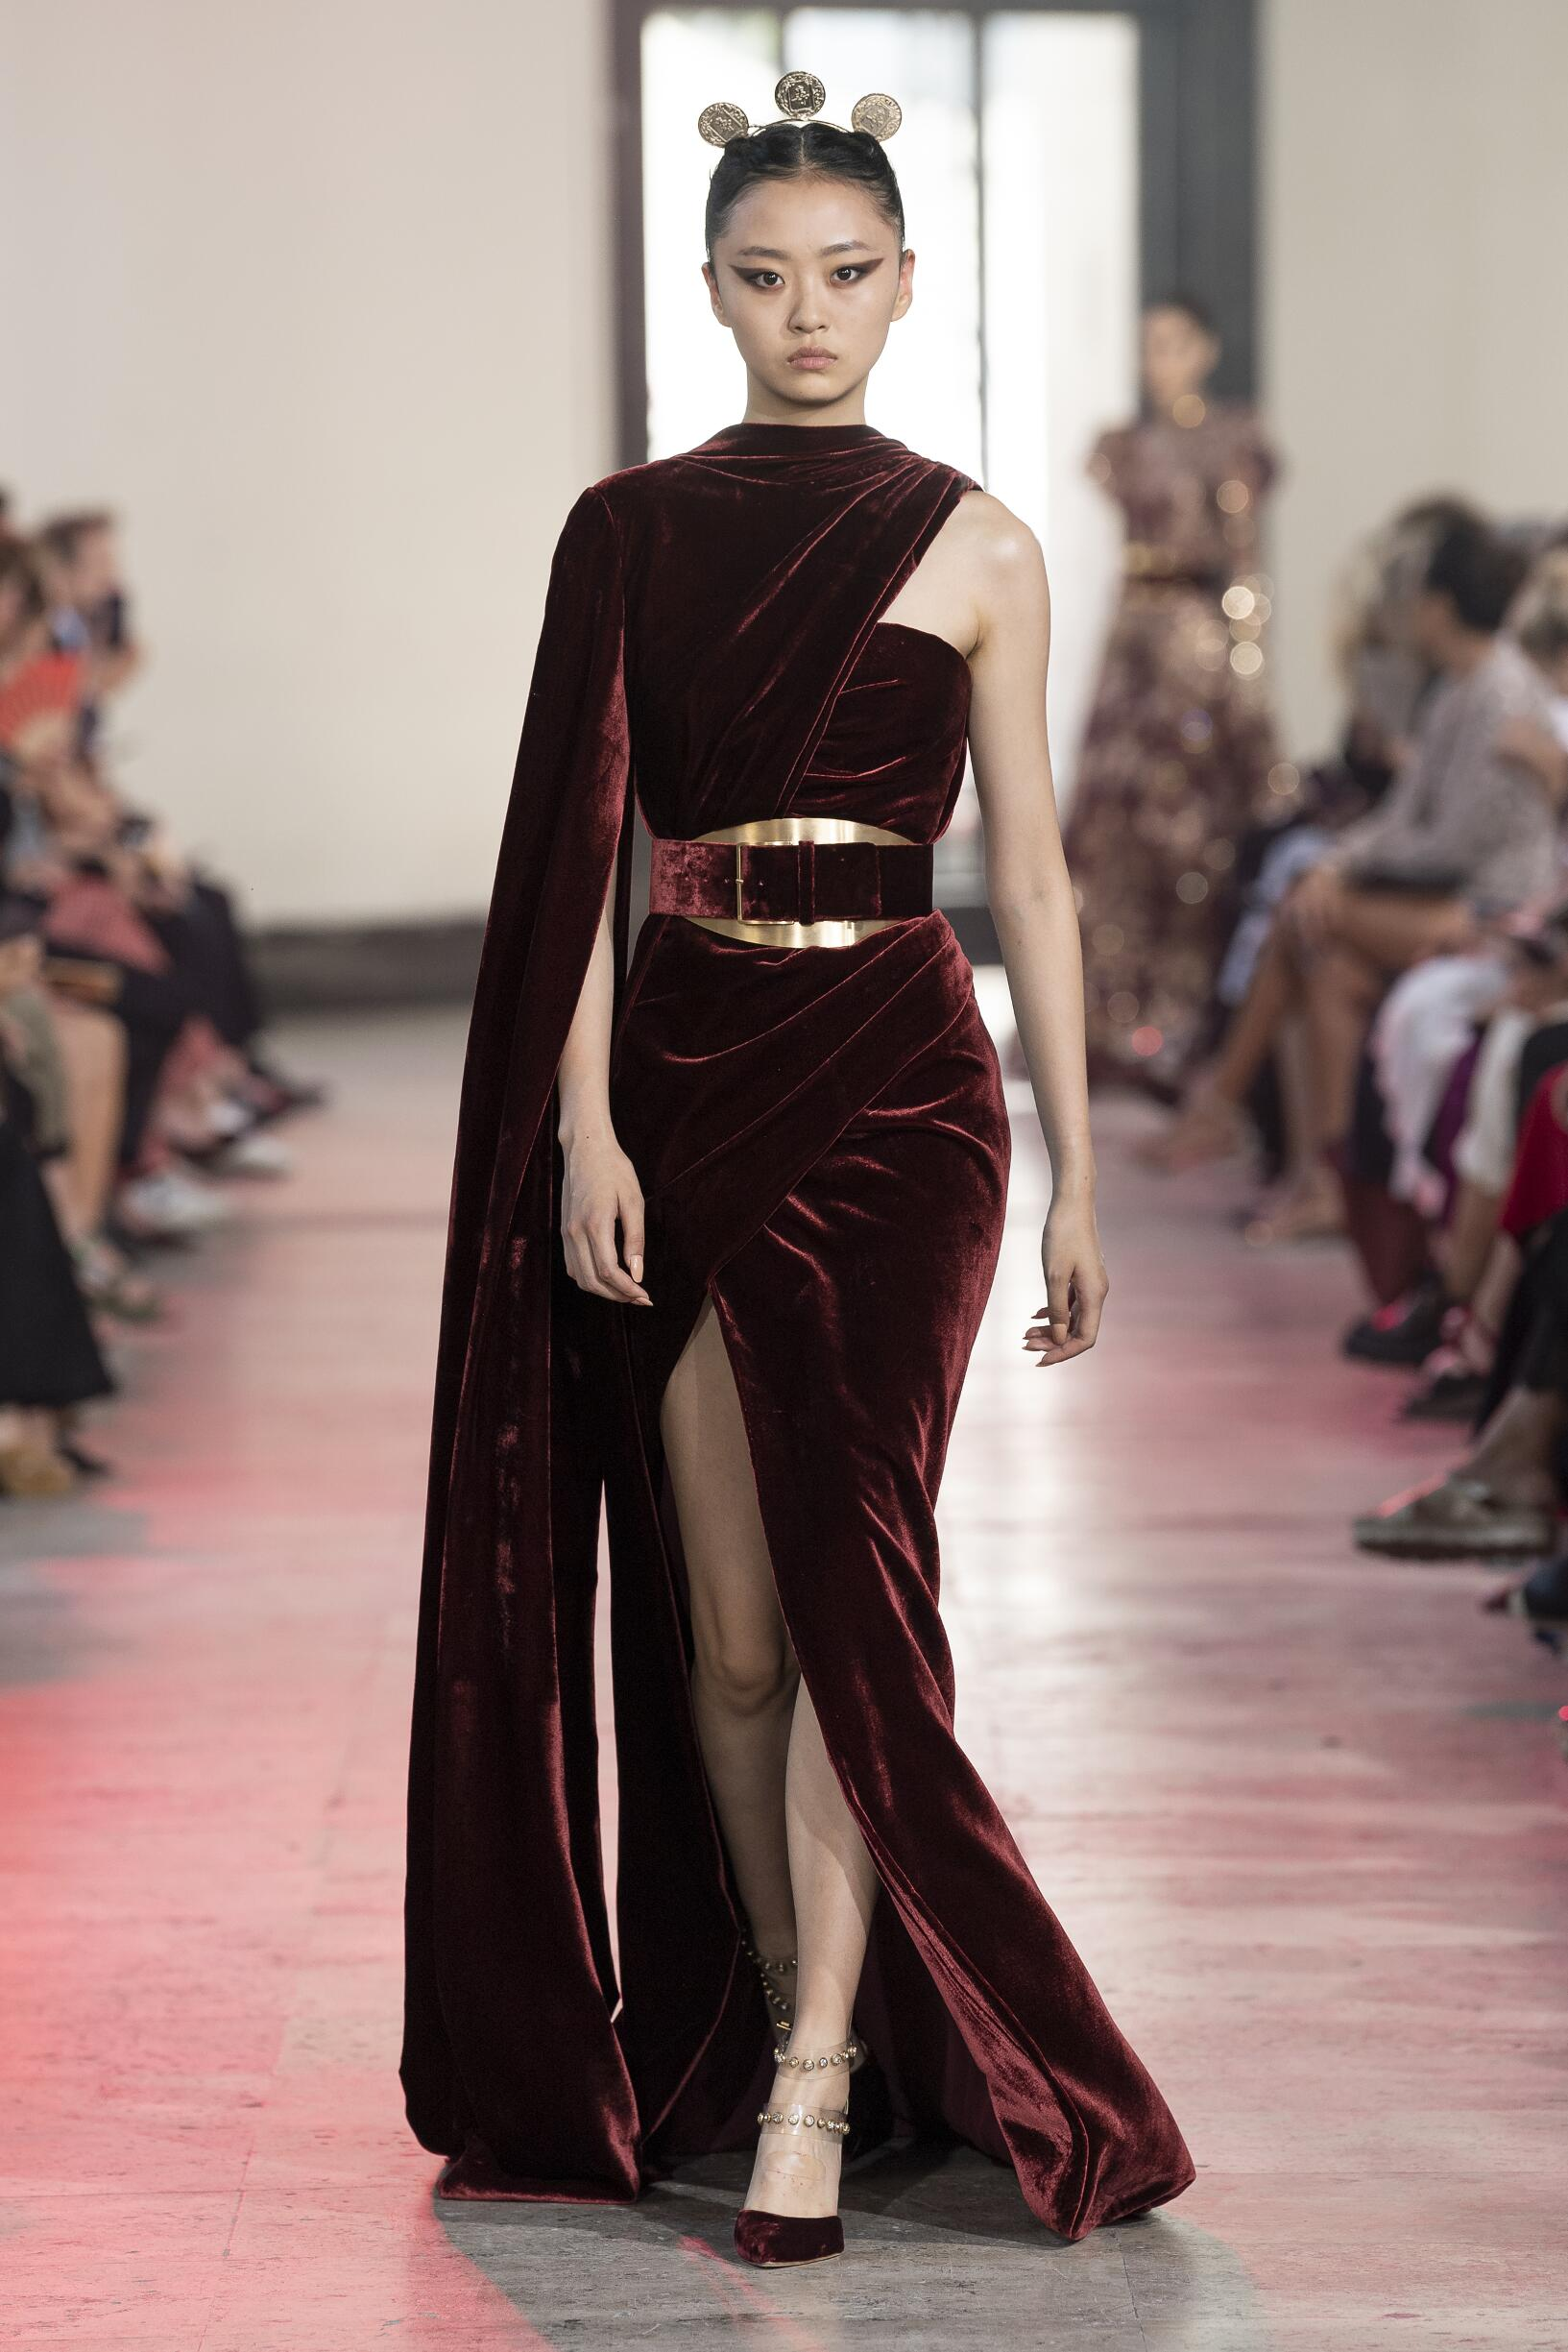 Elie Saab Haute Couture Fall 2019-2020 Catwalk